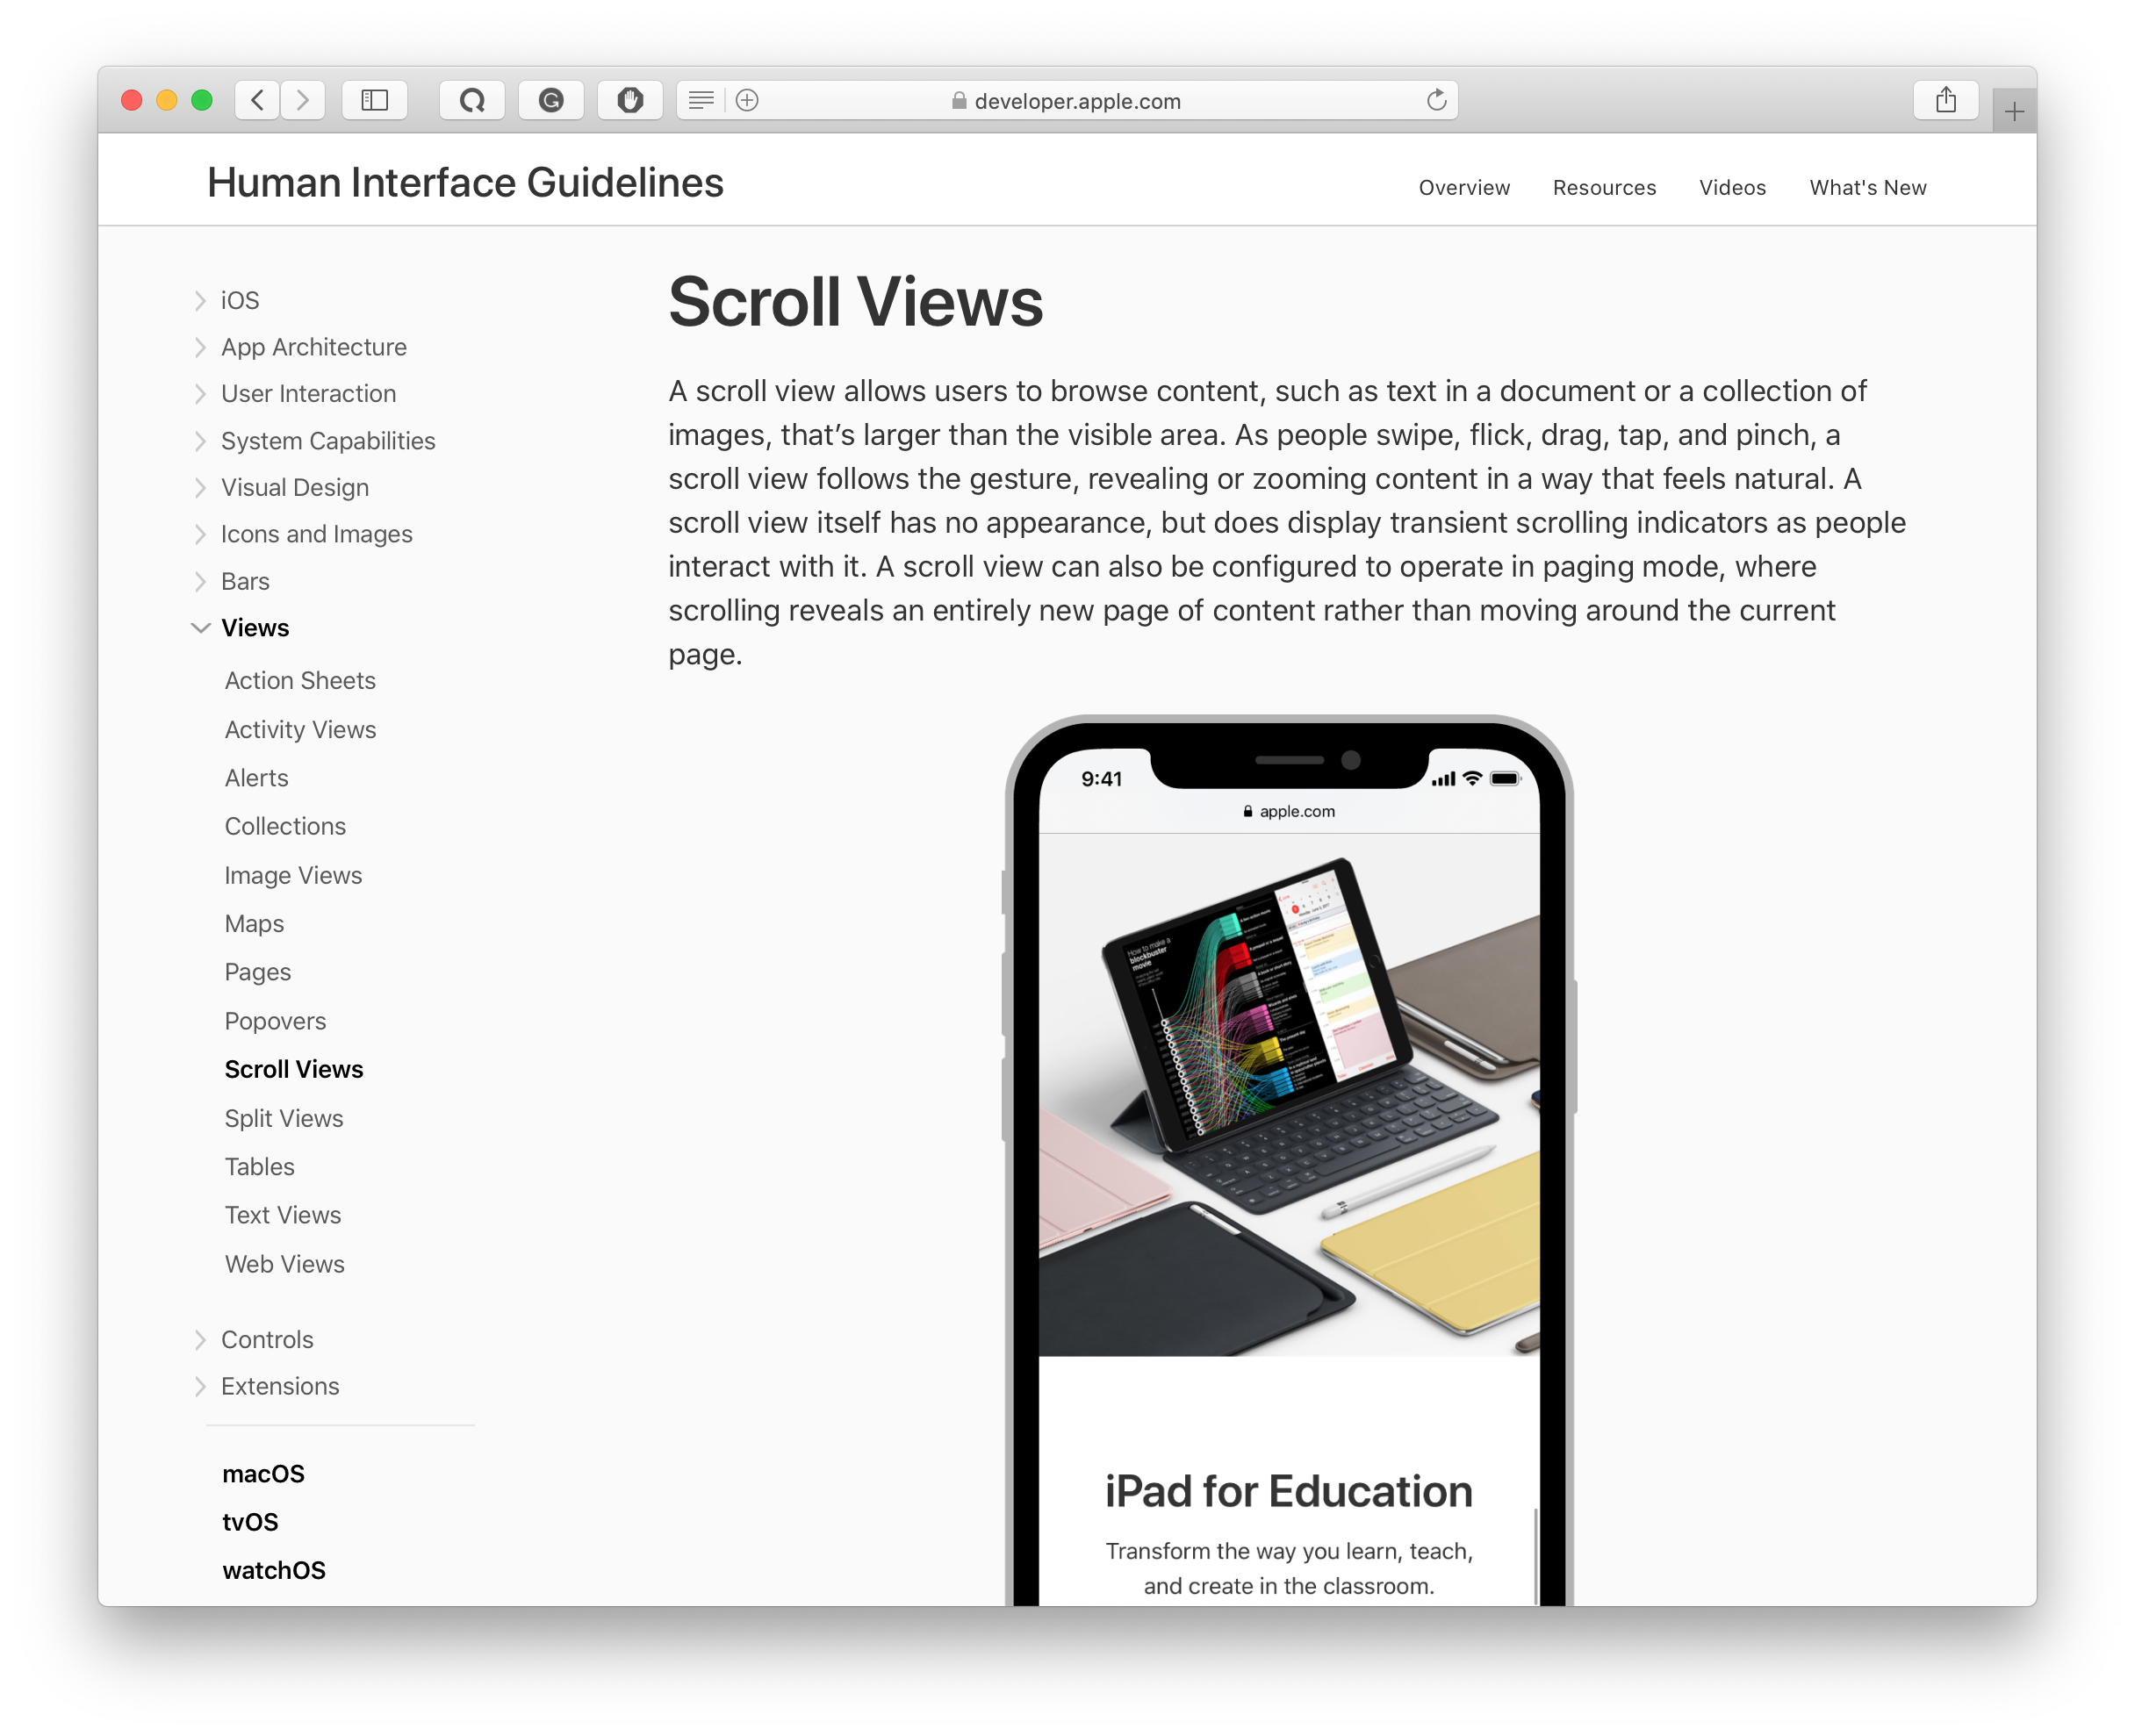 scroll views in apple's human interface guidelines